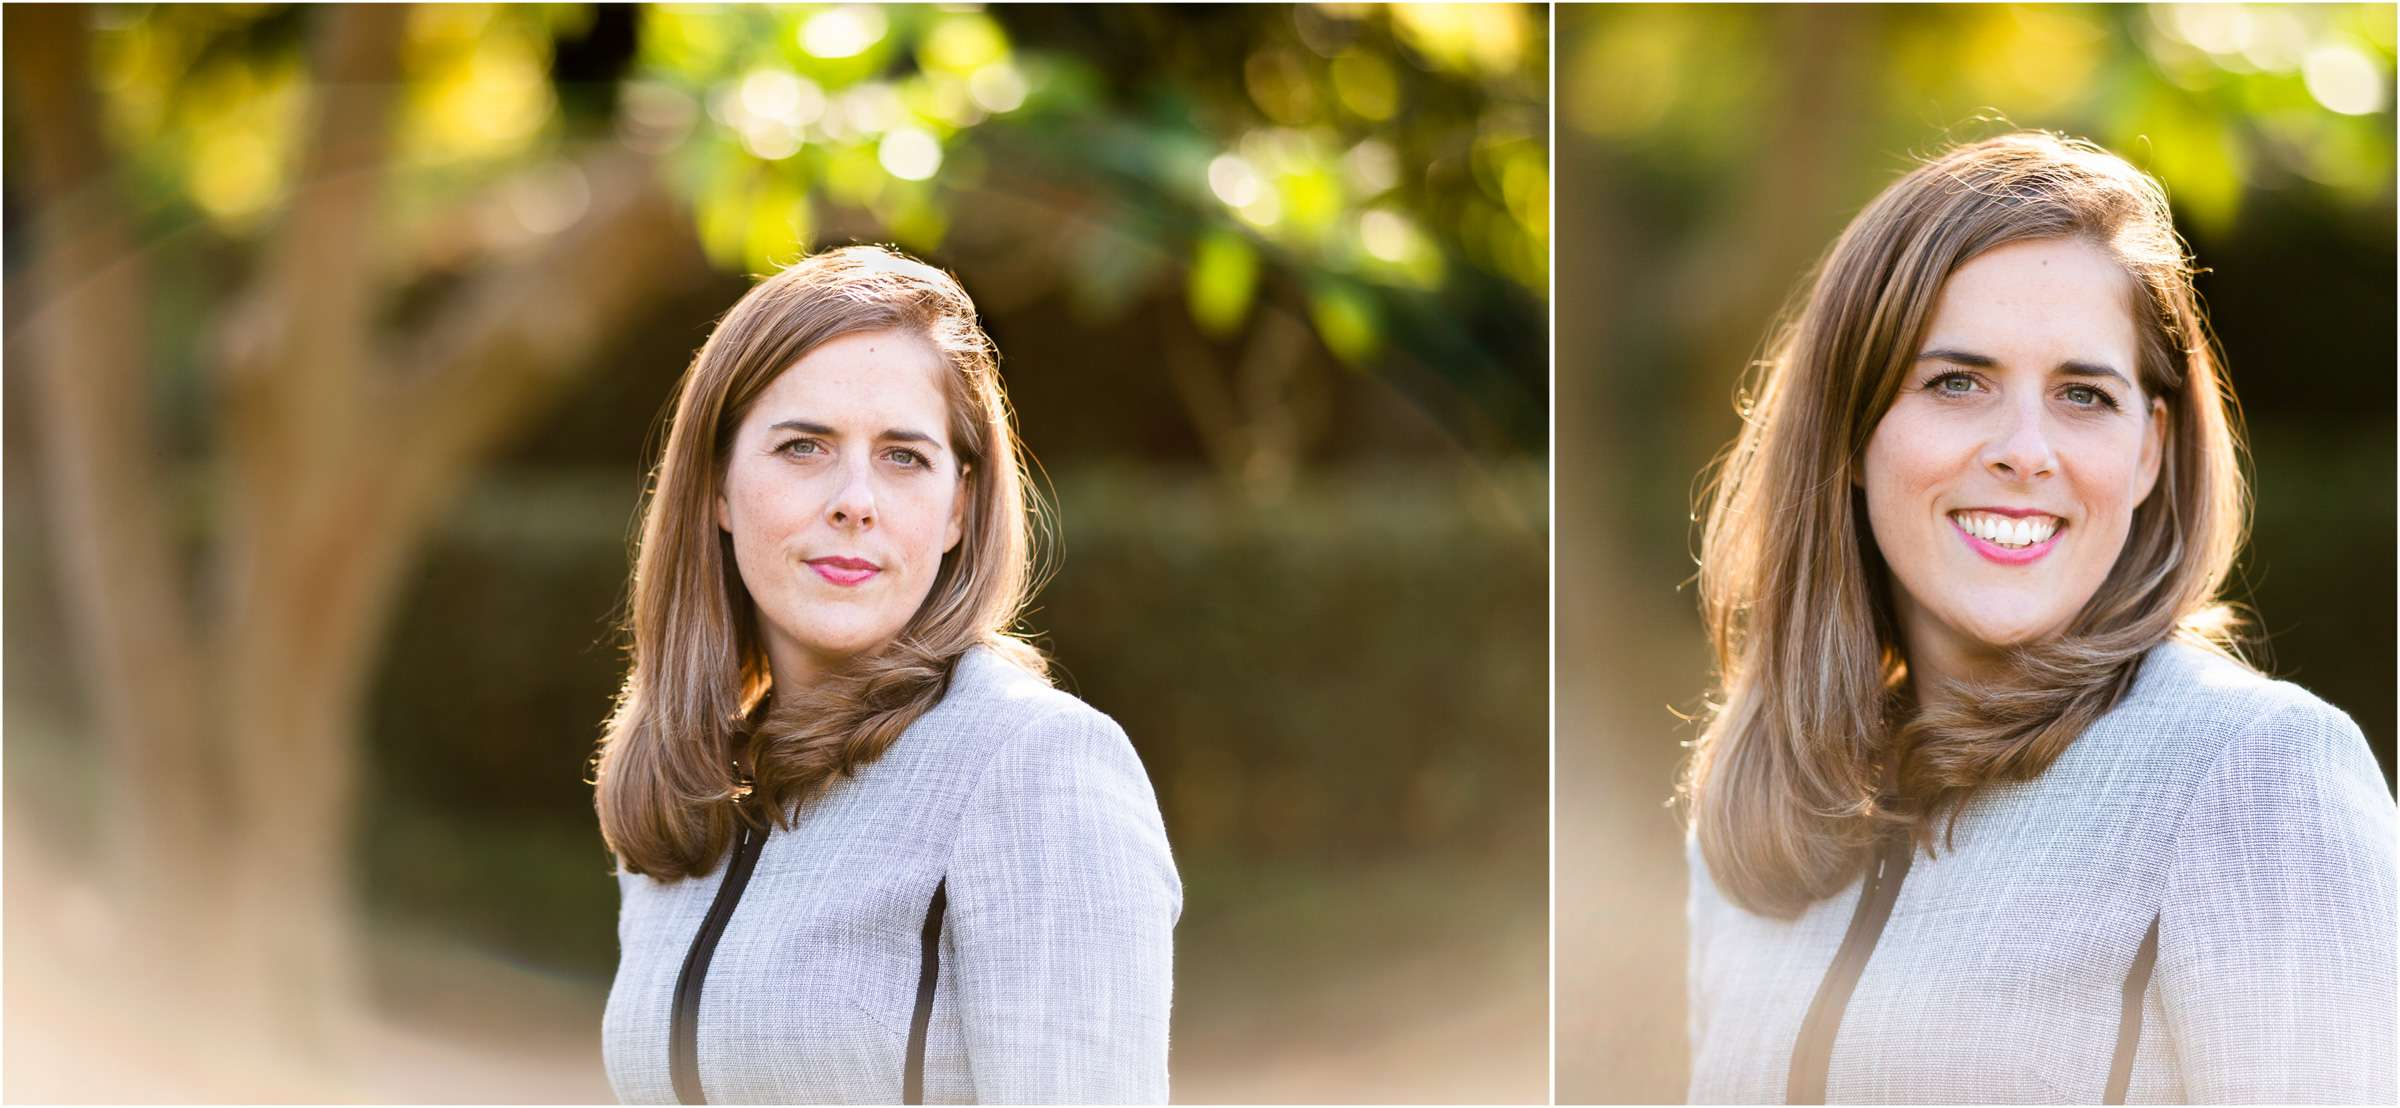 A montage of two headshot portrait images taken in Chichester, West Sussex